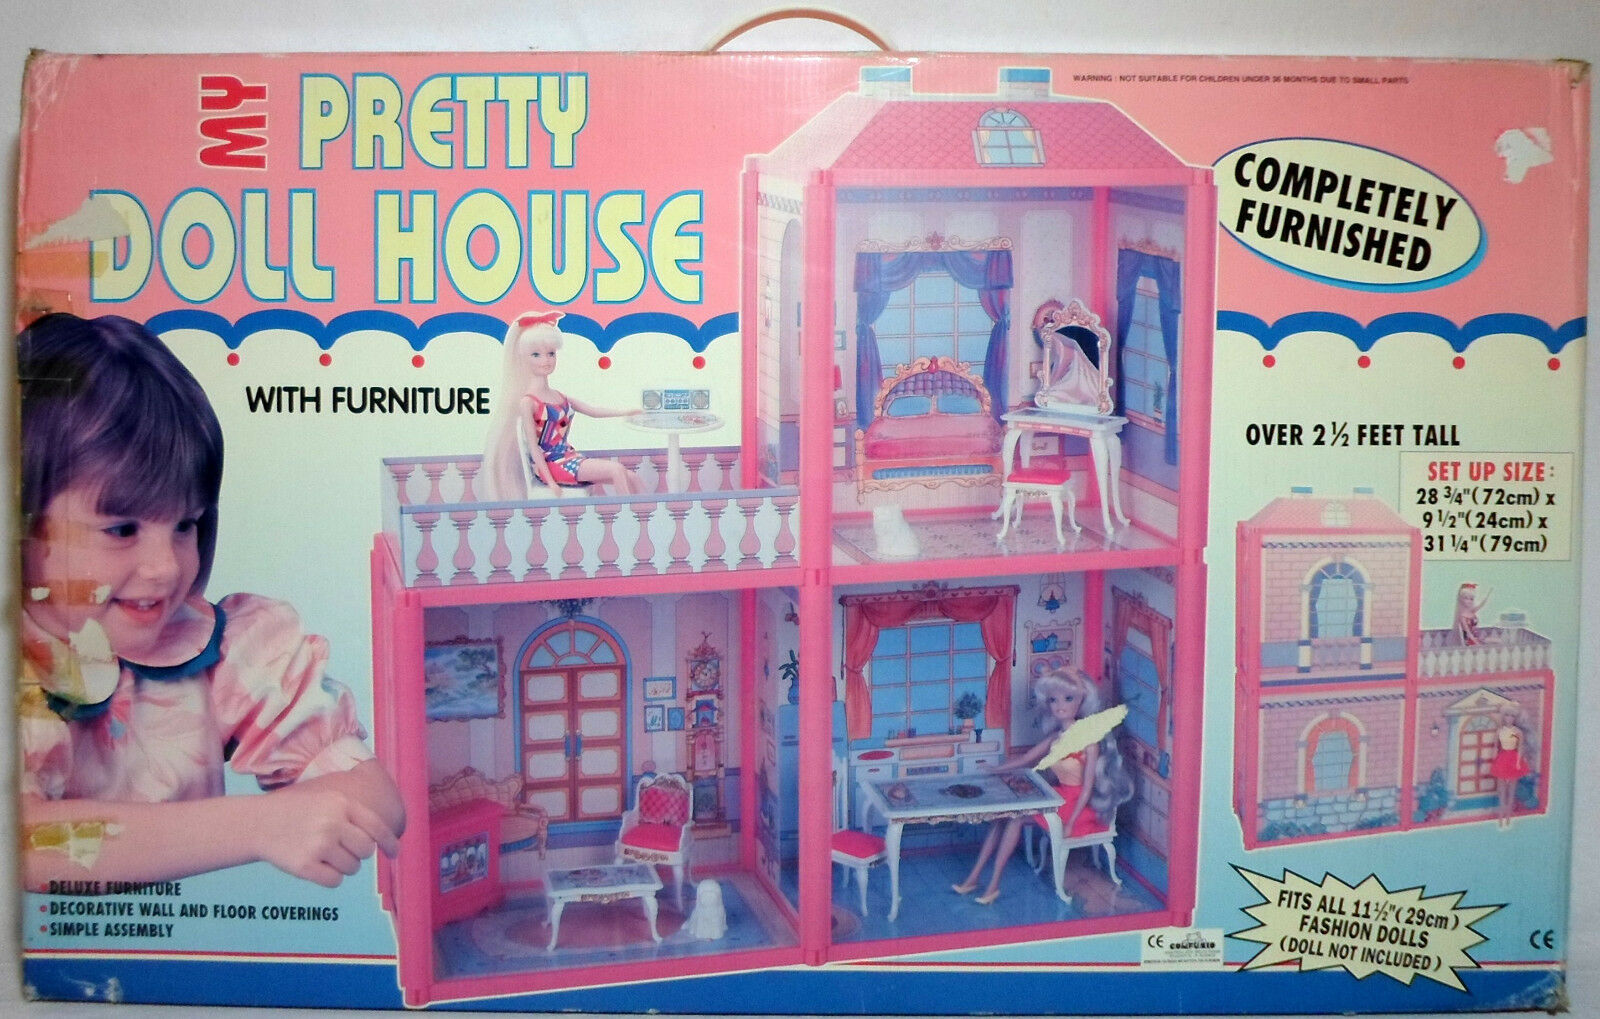 VTG 80's MY PRETTY DOLL HOUSE DETAILED PLAY SET FOR BARBIE   SINDY DOLL MIP NEW